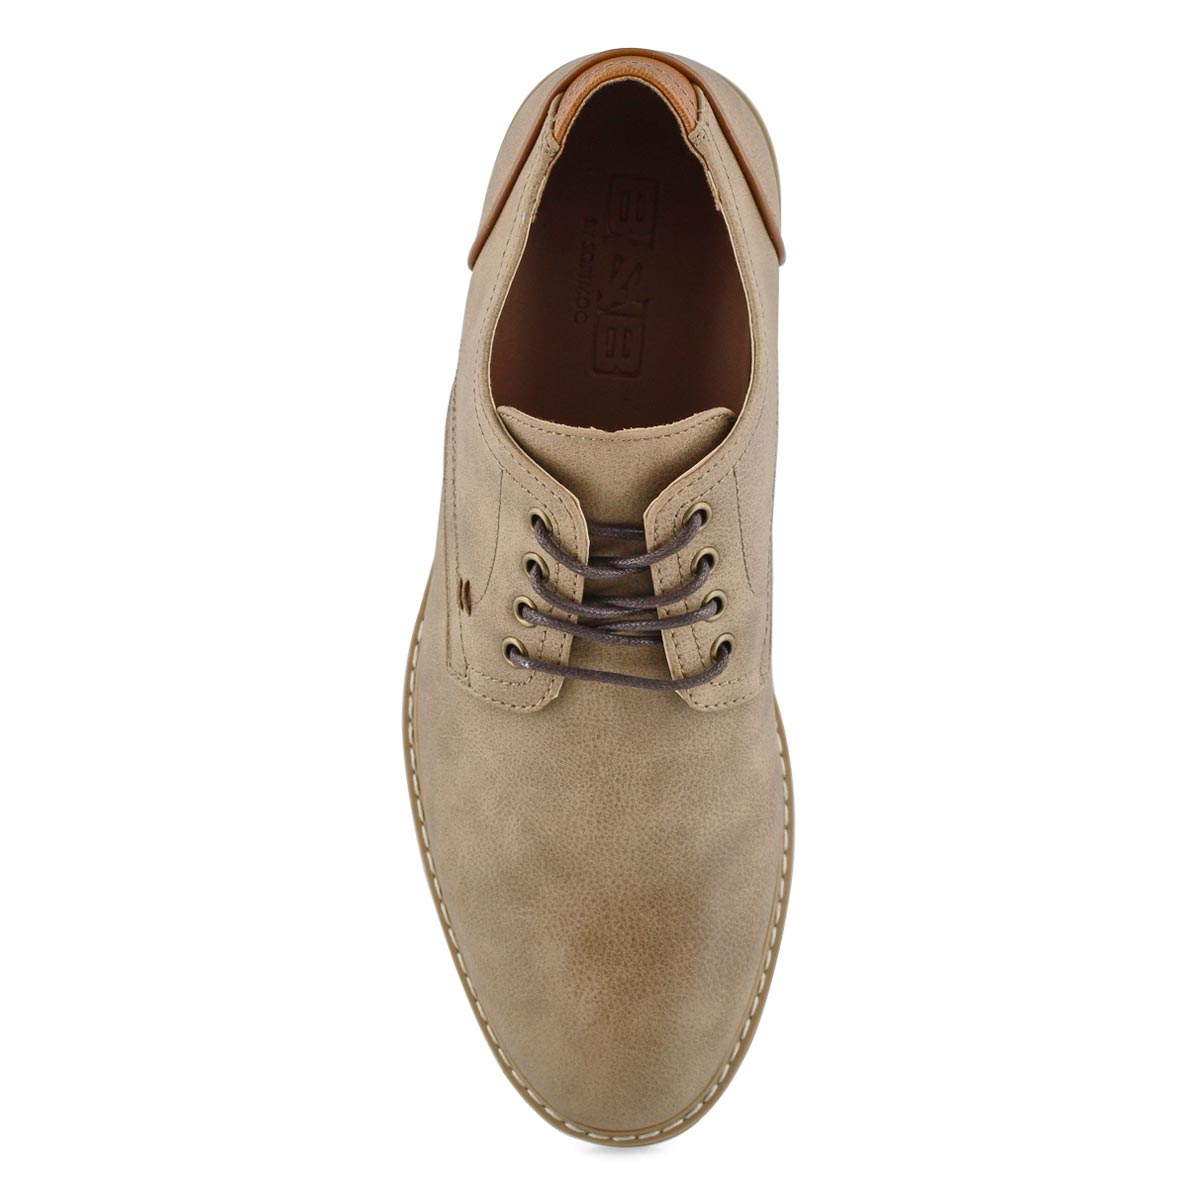 Mns Jamie taupe lace up casual oxford